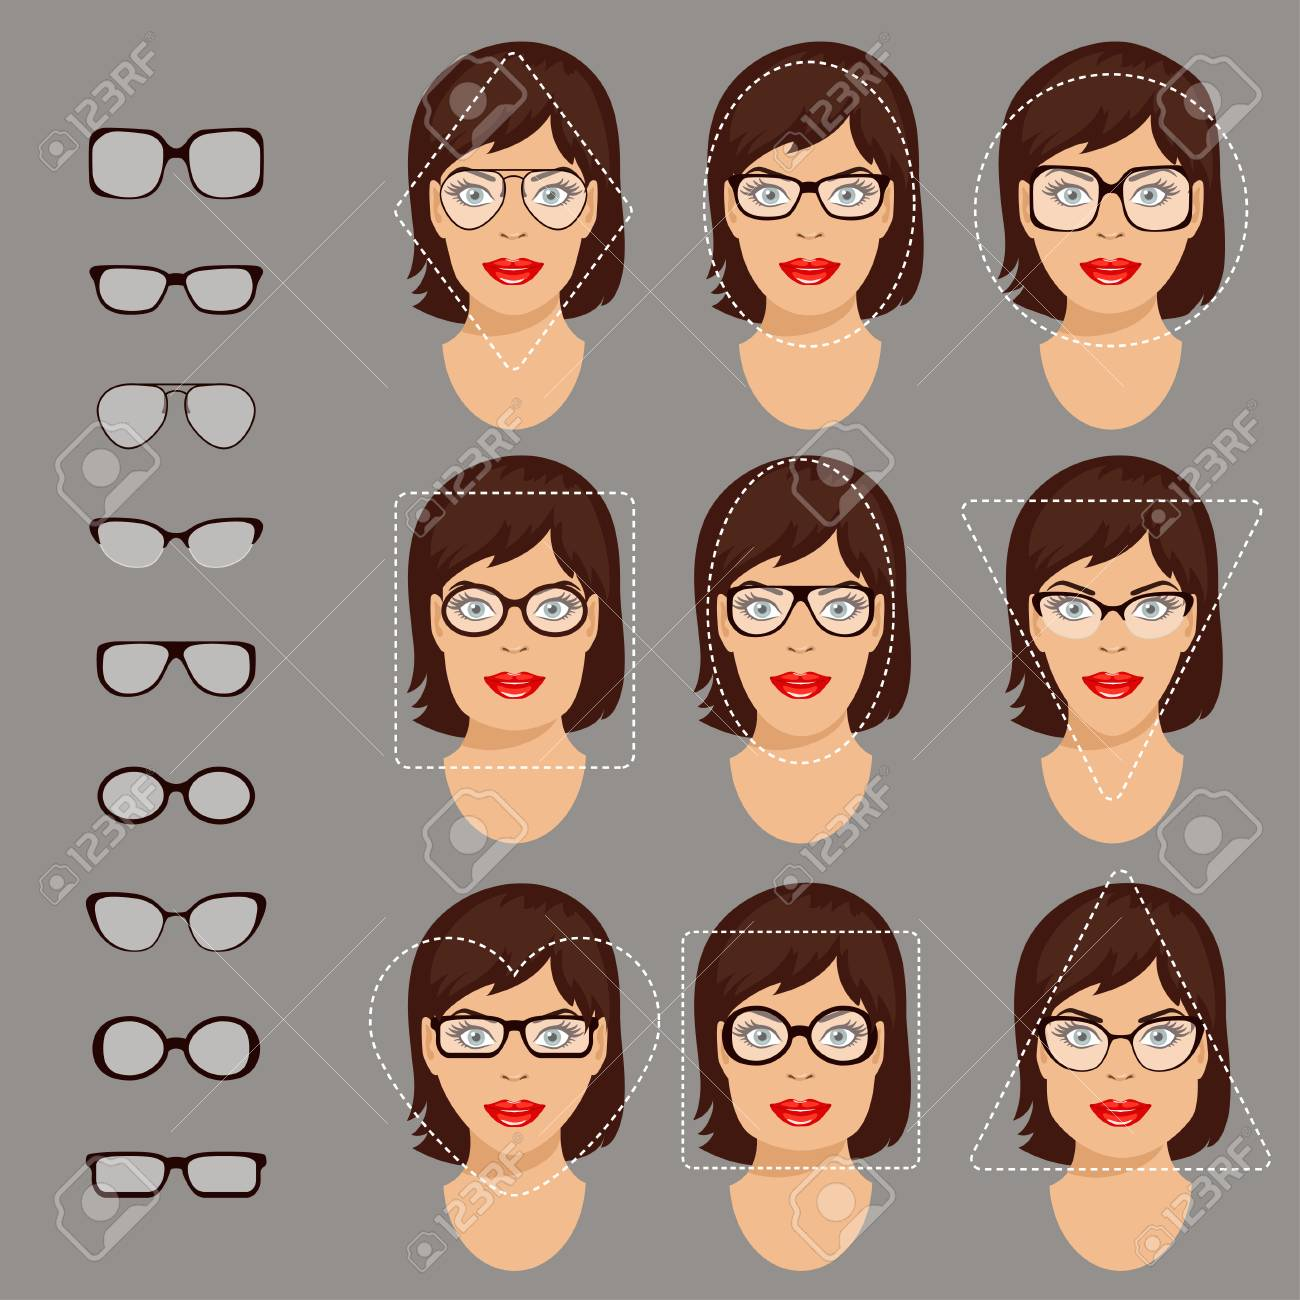 239b6b67df Stock vector illustration of glasses shapes for different womens face types  - square